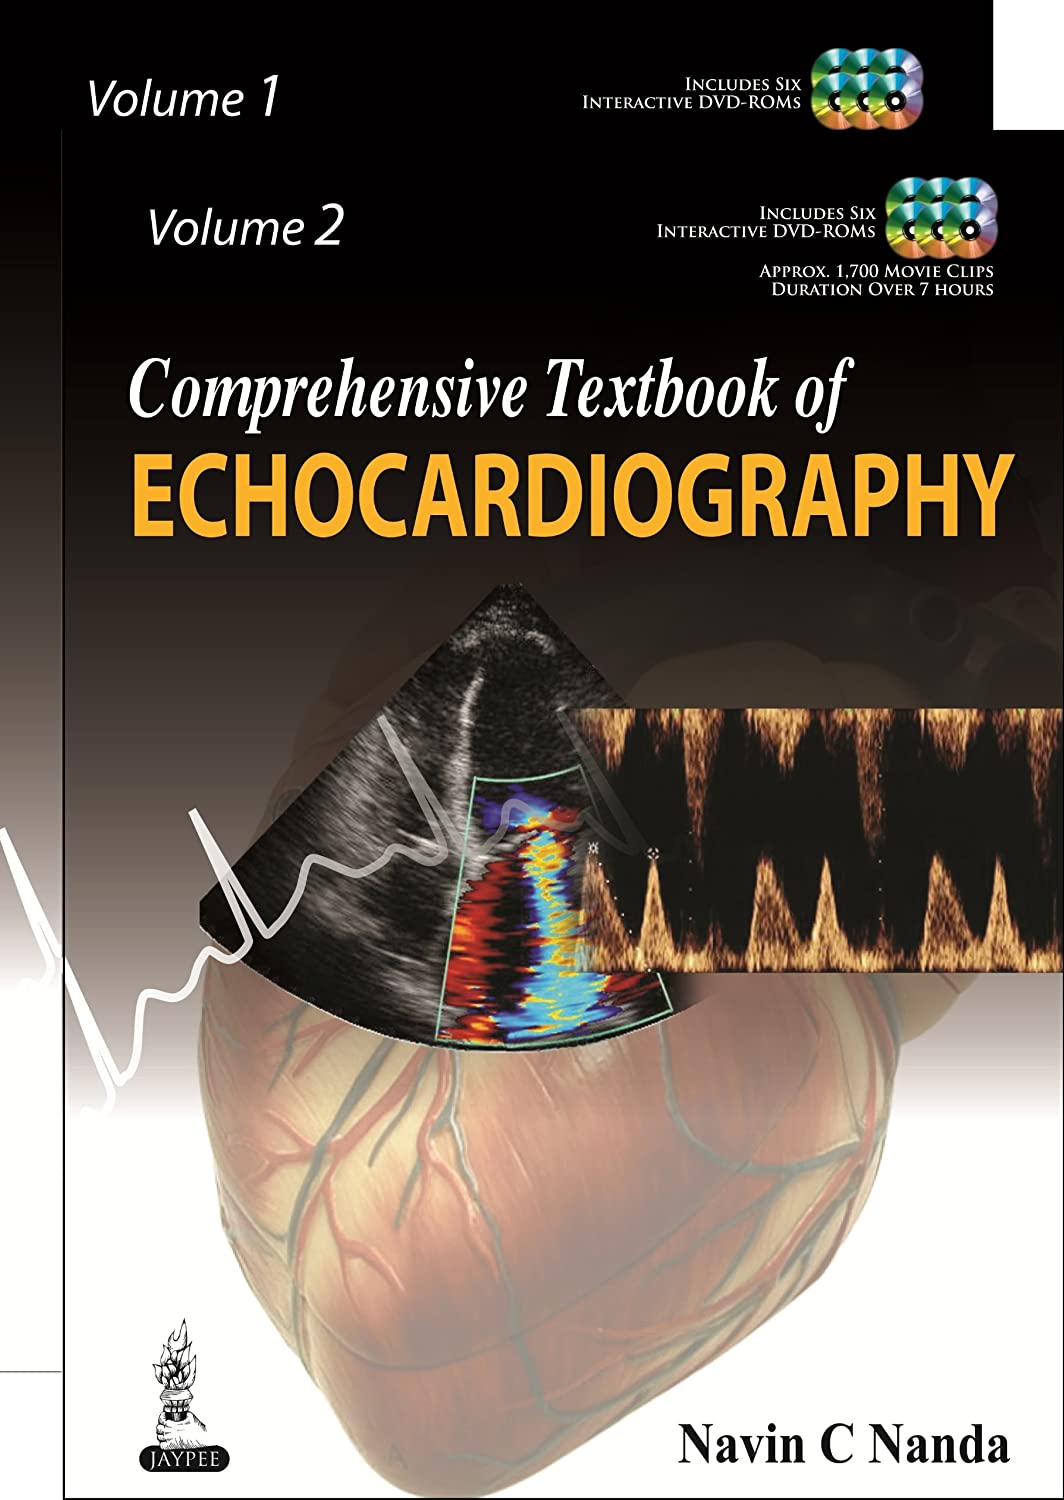 Comprehensive Textbook of Echocardiography (Vol. 1 and Vol. 2) 813XFMfc2ZL._SL1500_